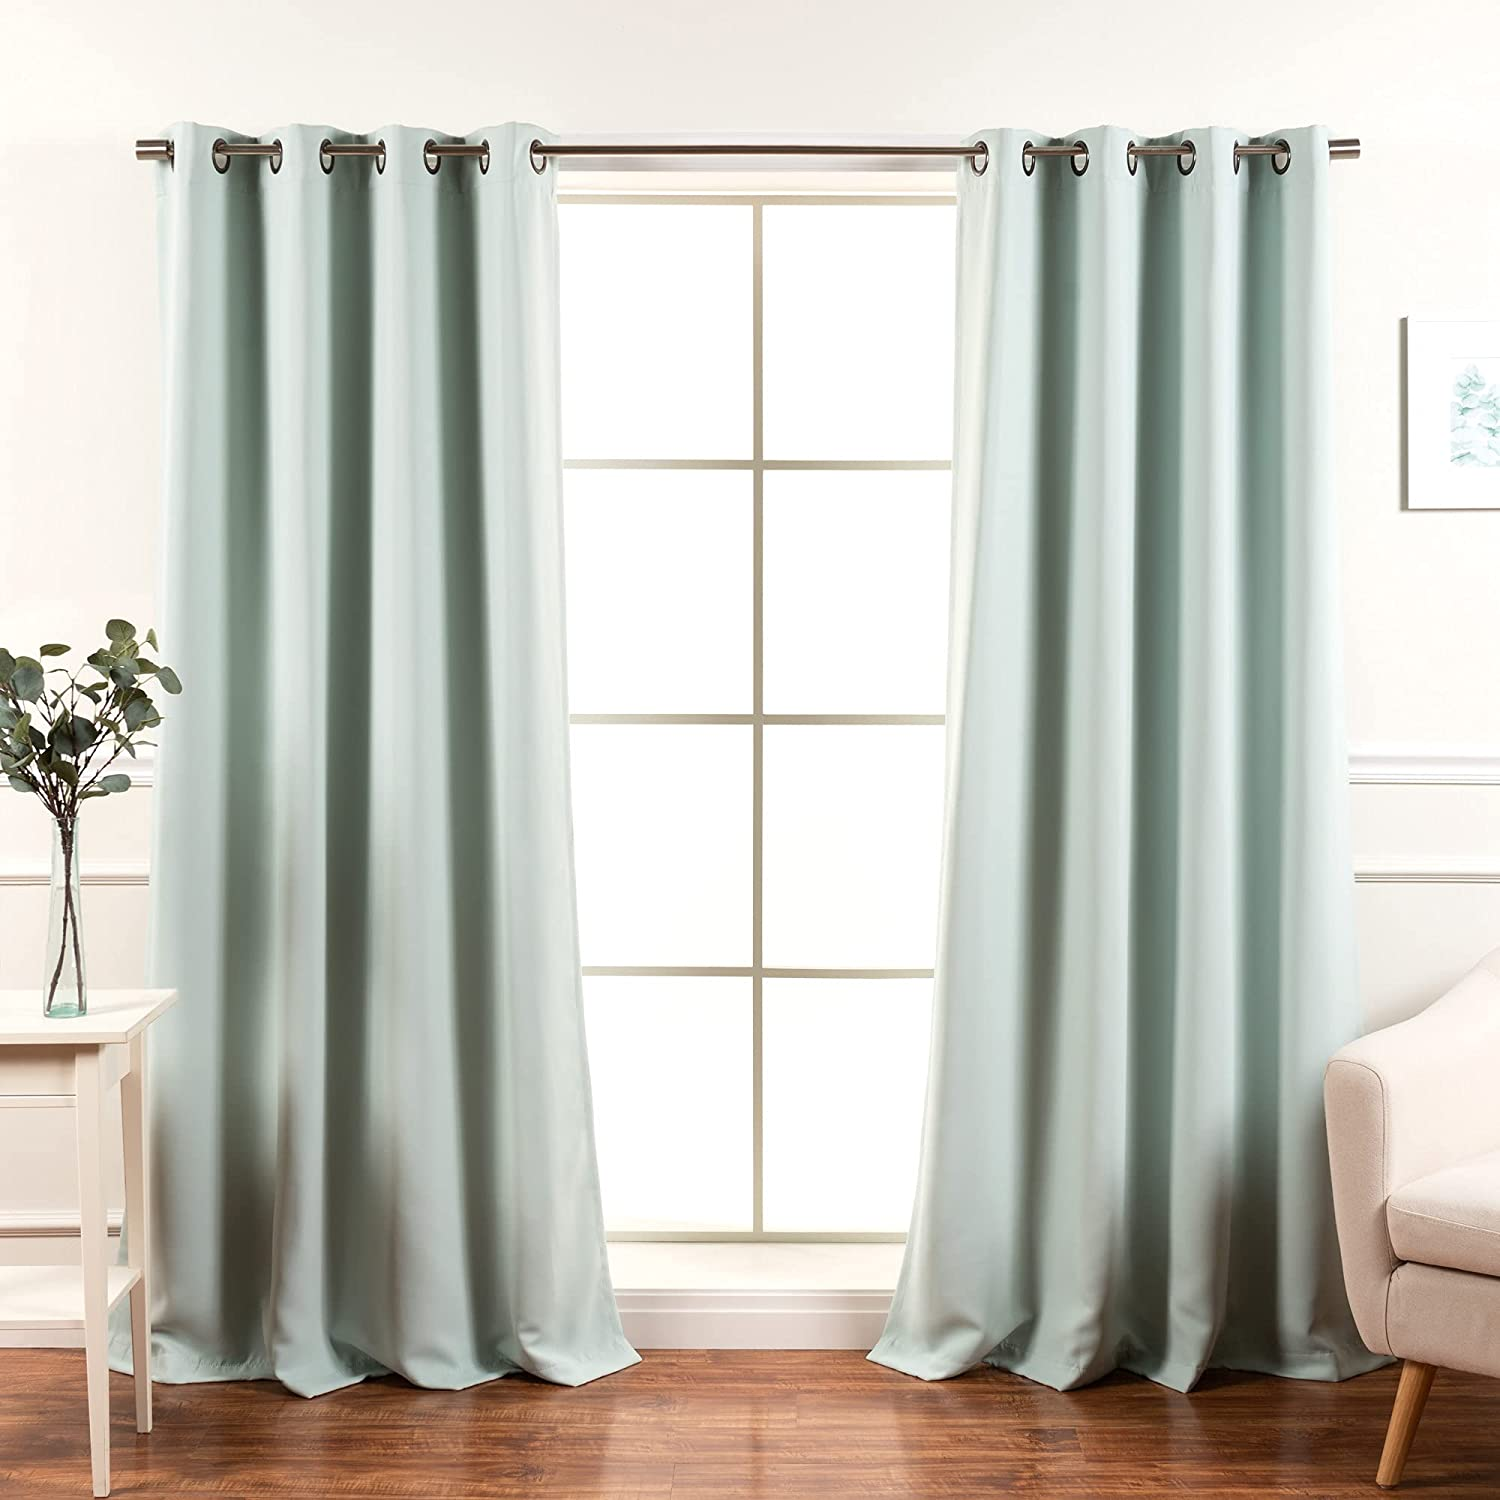 Best Home Fashion Blackout Curtain Panels - Premium Thermal Insulated Window Treatment Blackout Drapes for Bedroom - Antique Bronze Grommet Top – Mint - 52